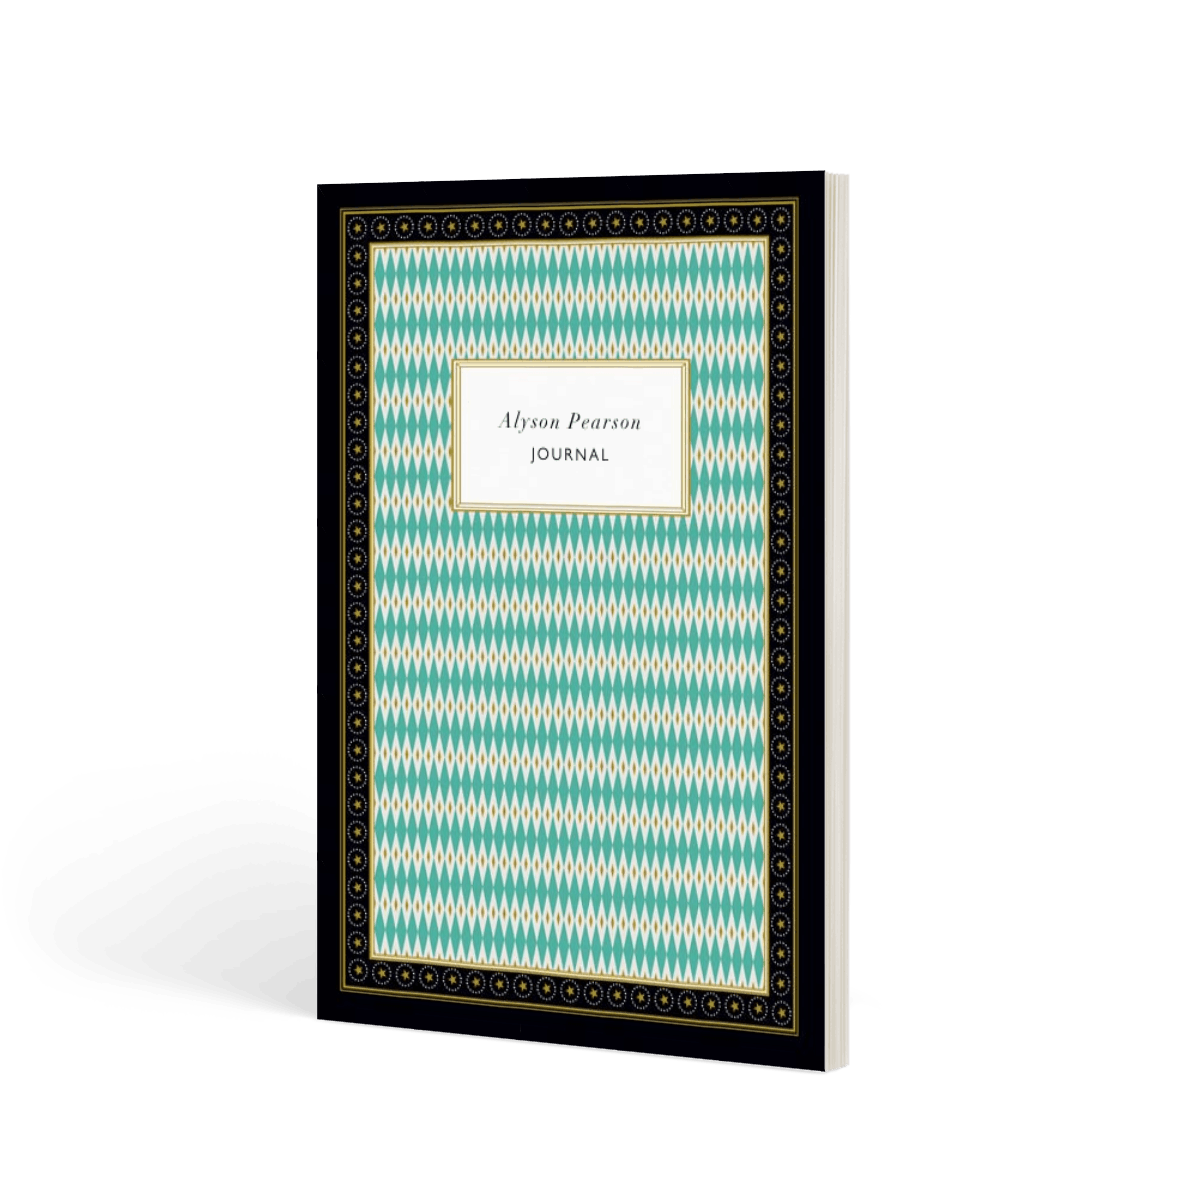 Https%3a%2f%2fwww.papier.com%2fproduct image%2f13567%2f6%2fdeco diamond green 3478 front 1478860884.png?ixlib=rb 1.1